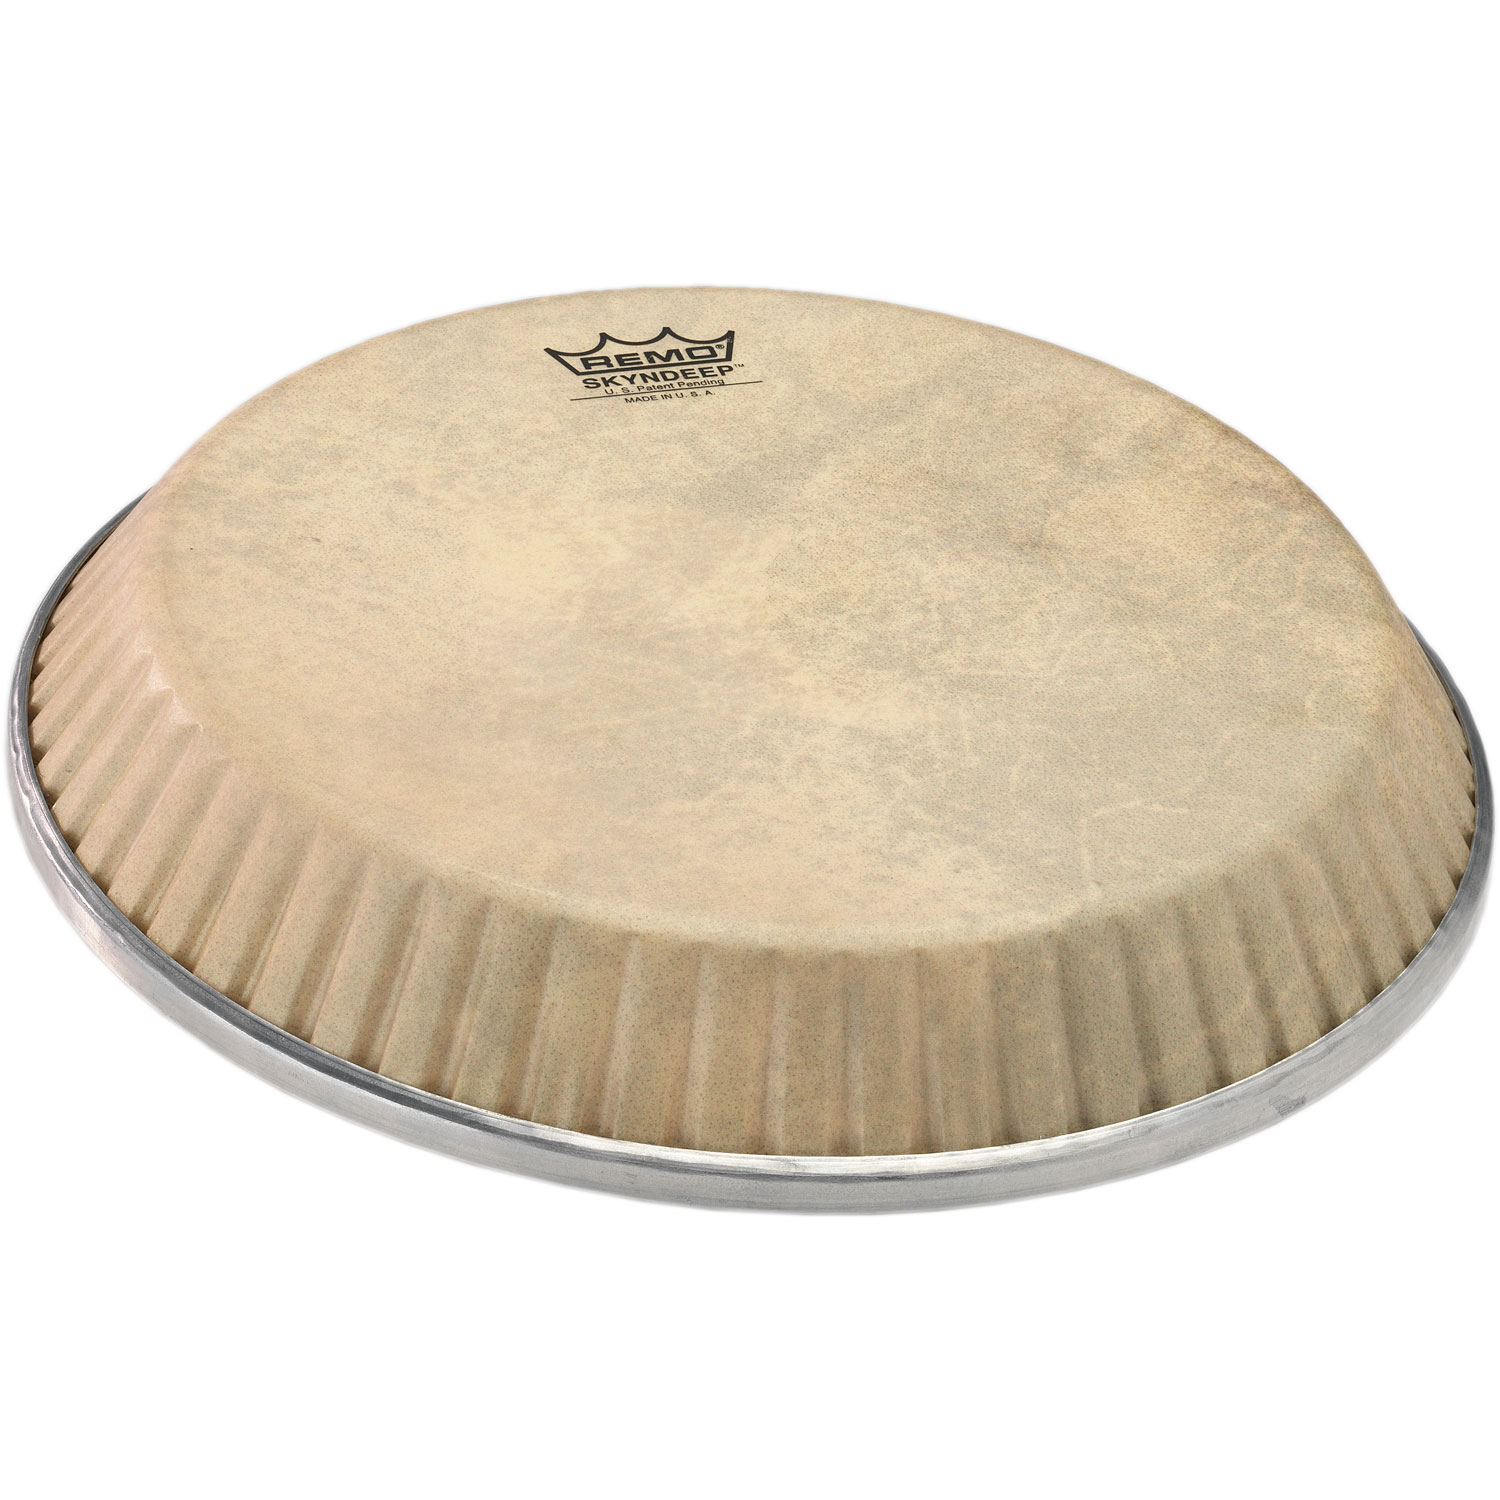 "Remo 12.25"" Symmetry Skyndeep Conga Drum Head (D1 Collar) with Calfskin Graphic"